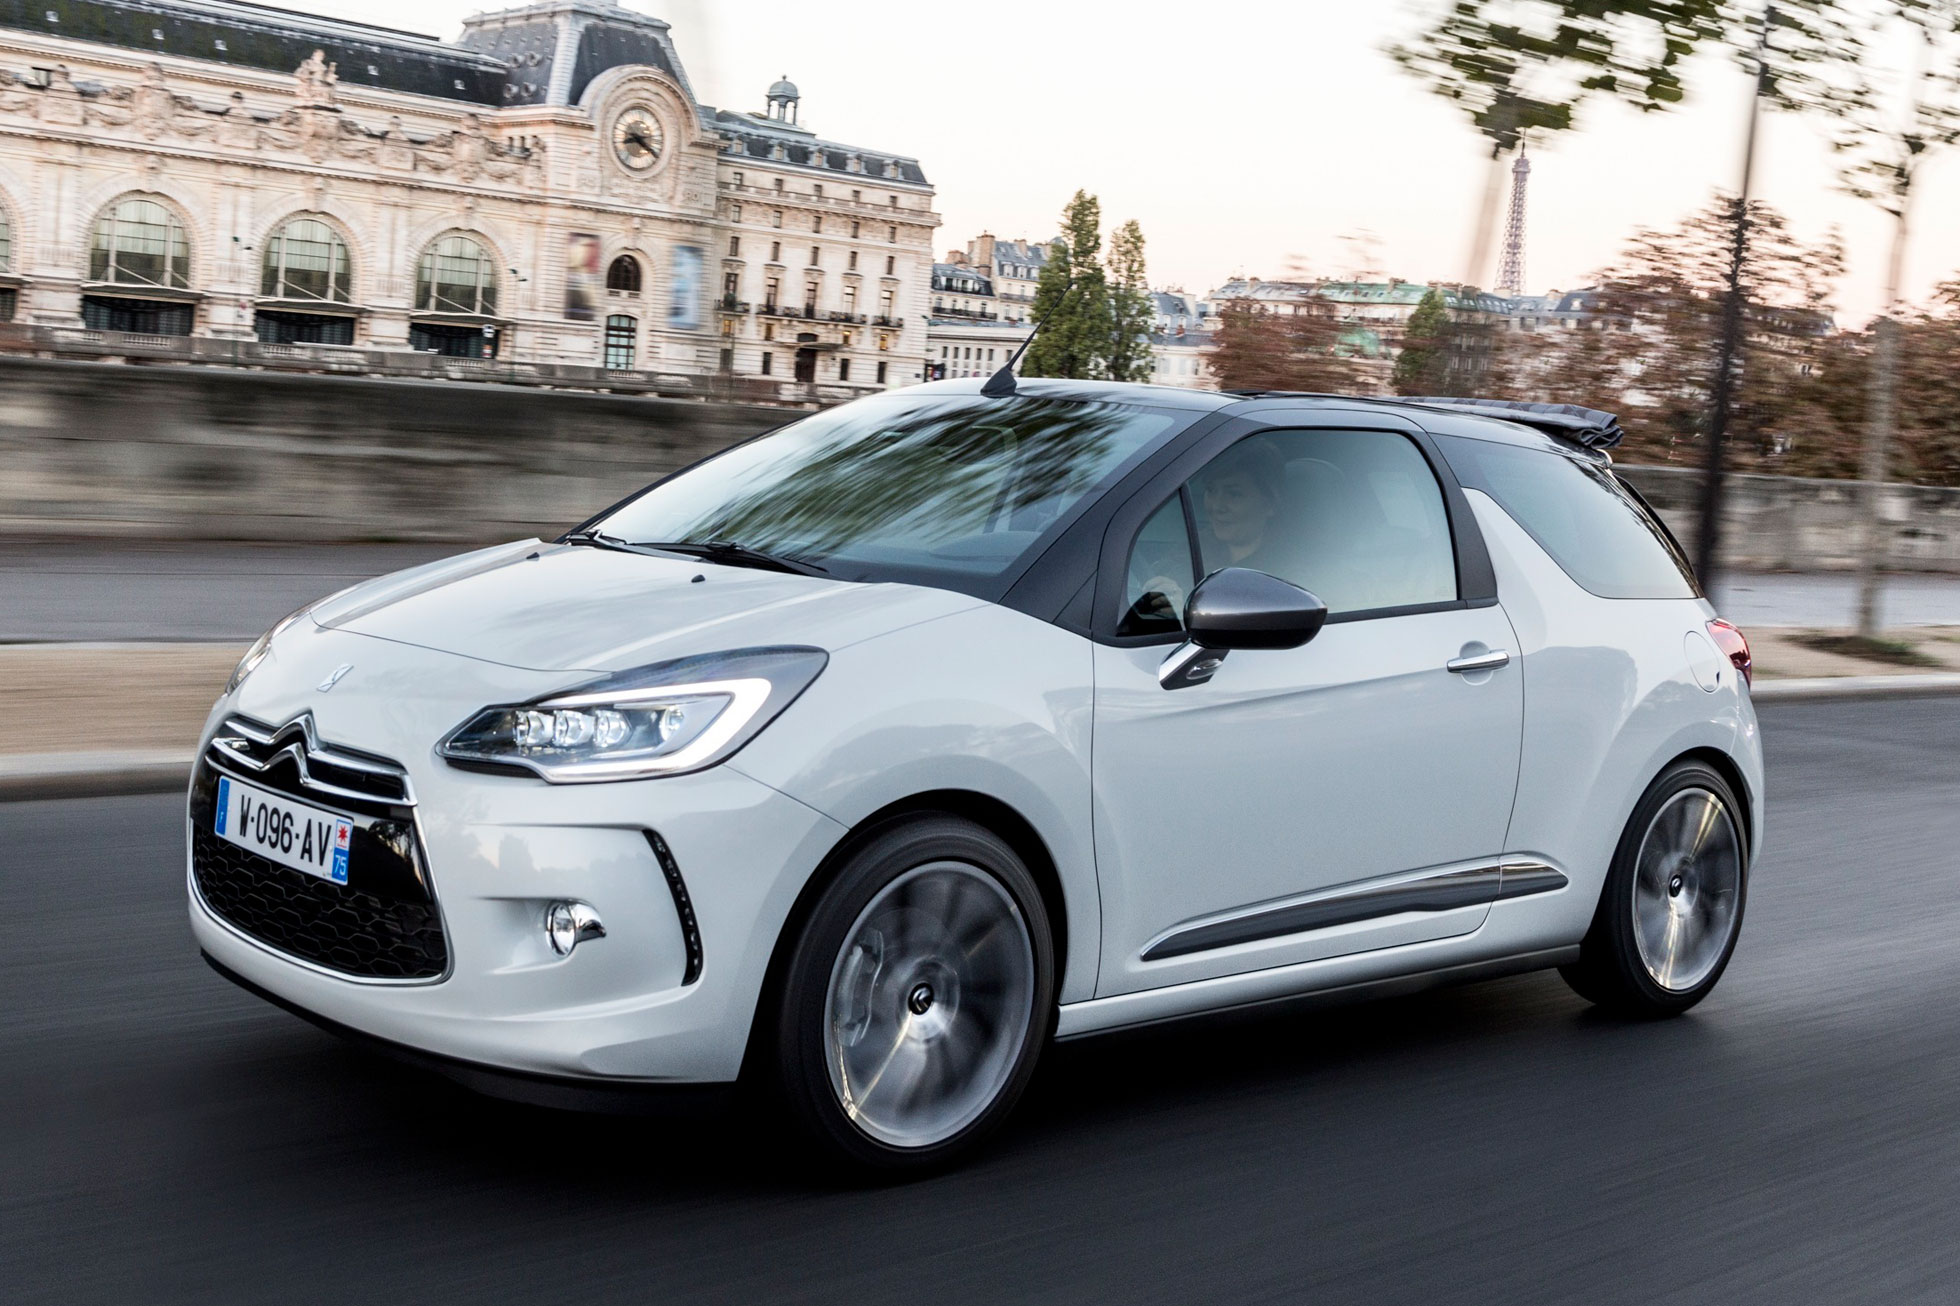 citroen ds3 2015 first drive review motoring research. Black Bedroom Furniture Sets. Home Design Ideas